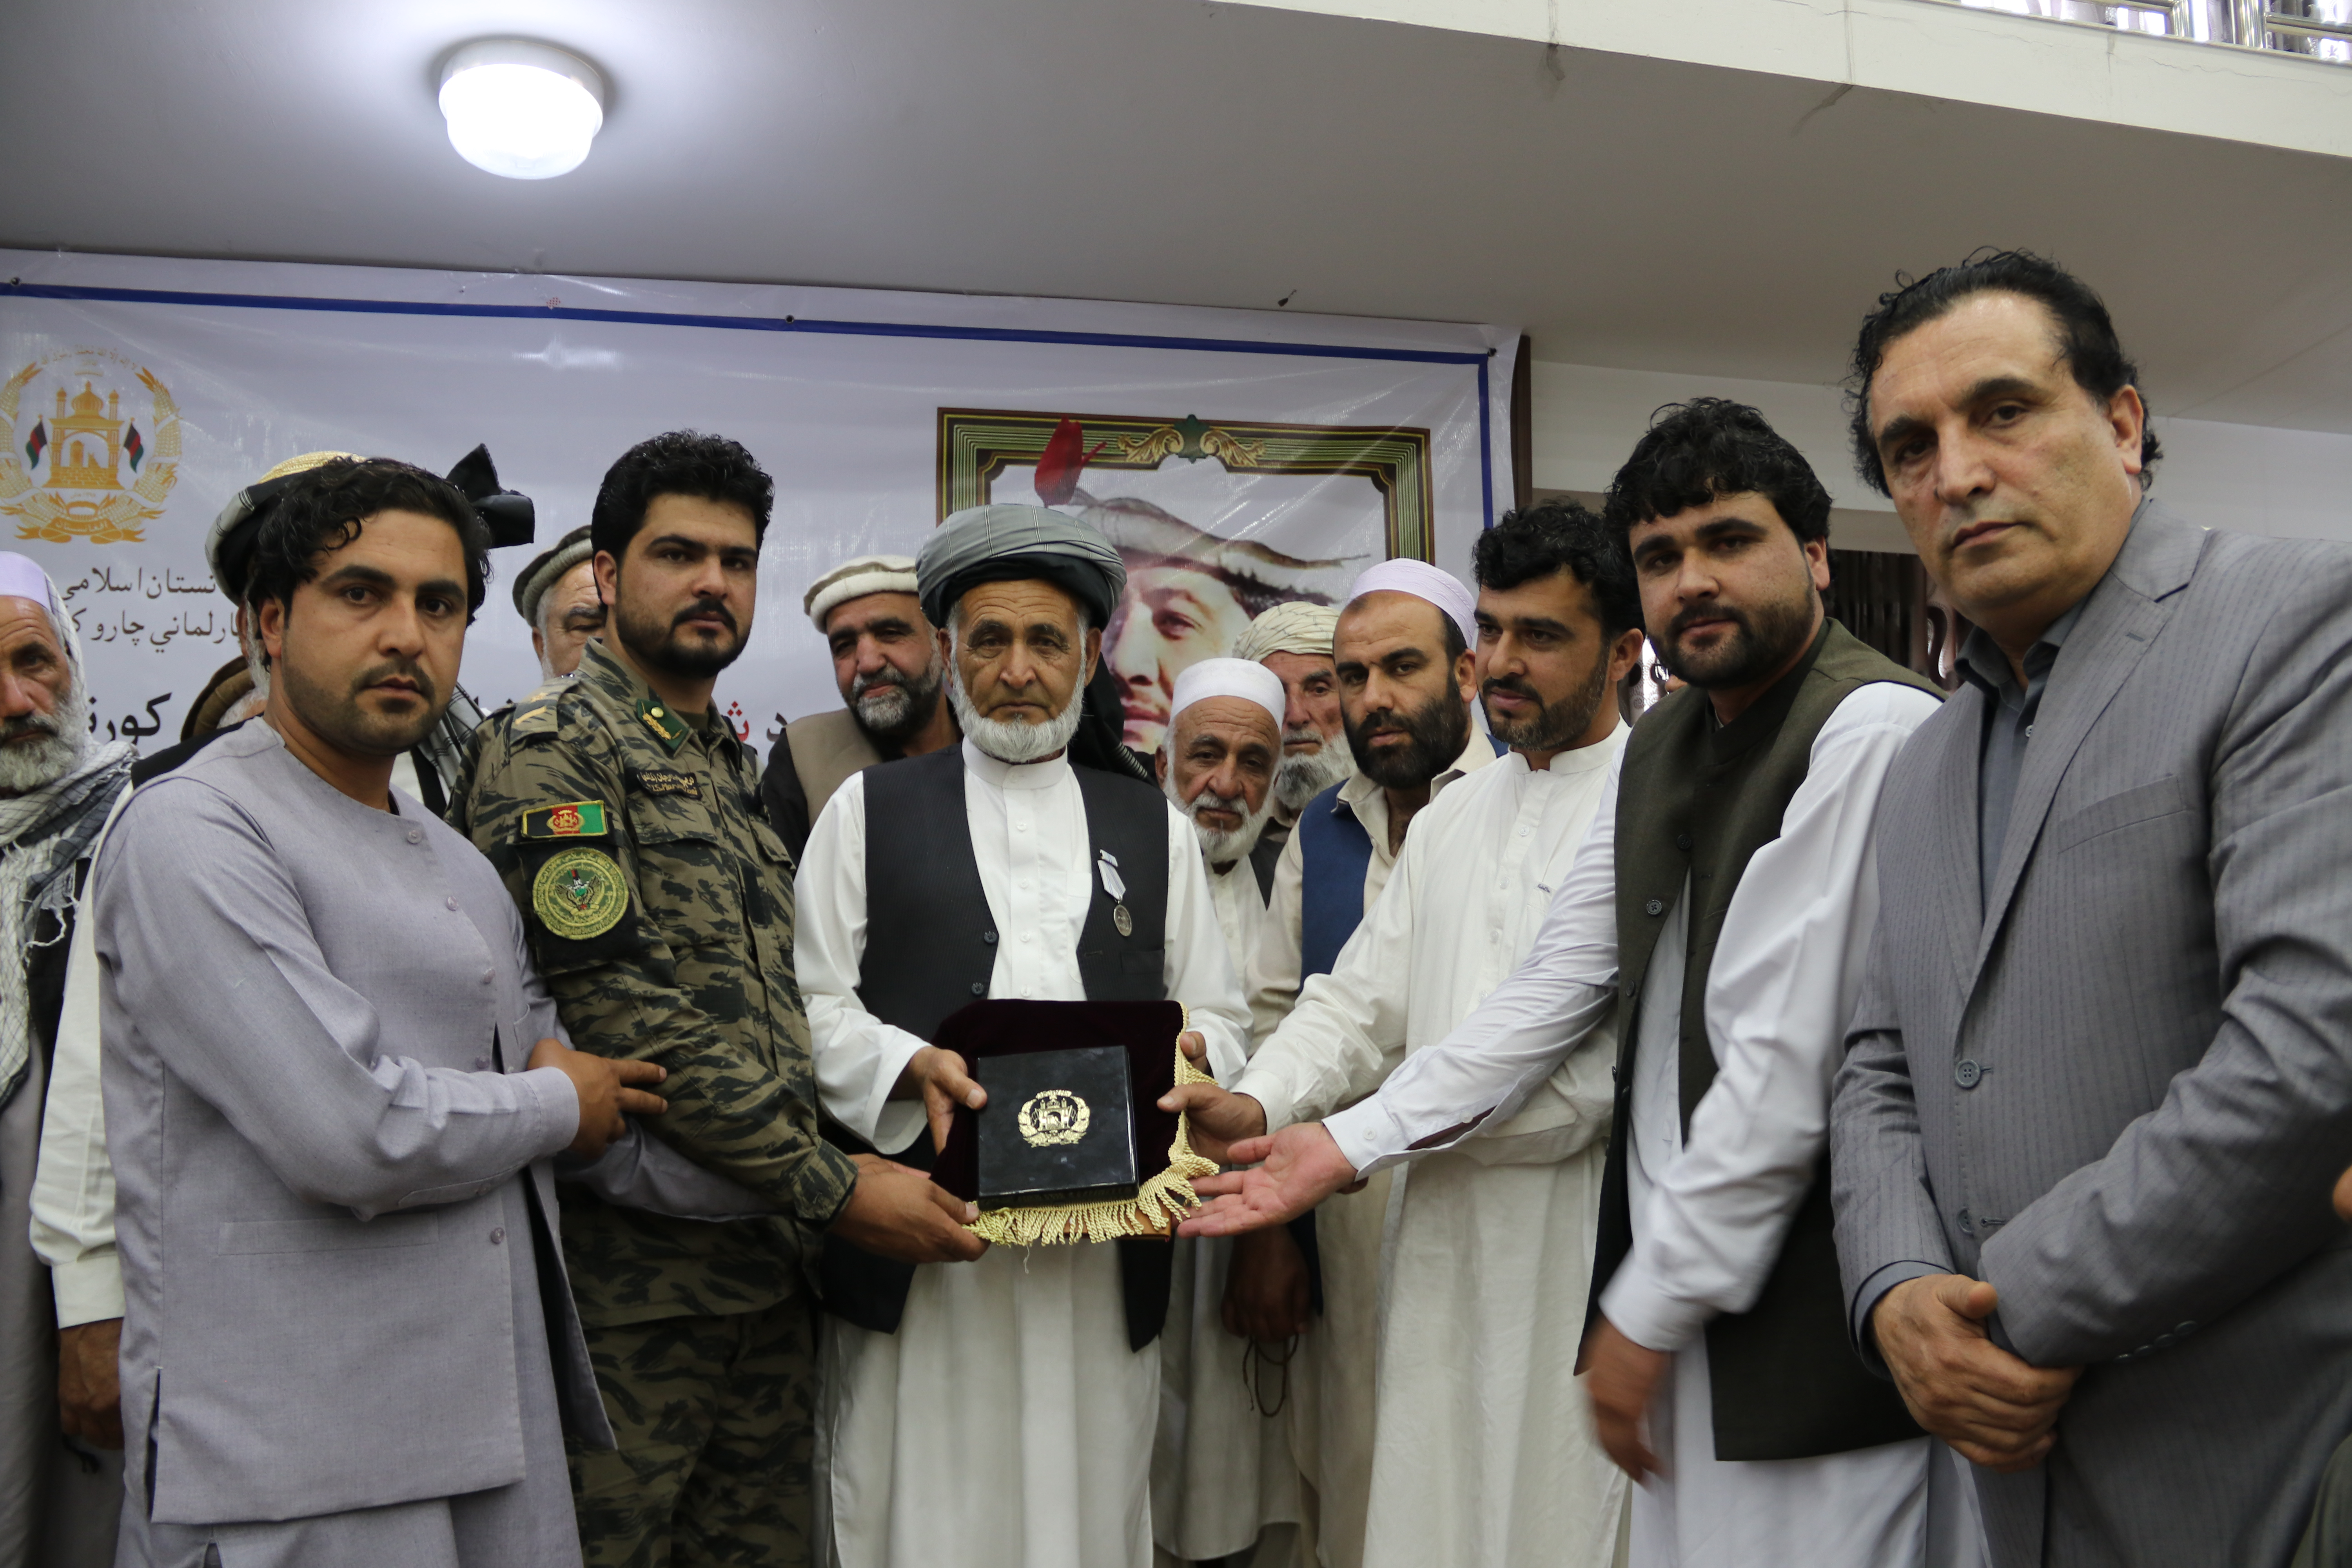 SMPA Minister Awards Heroism Medal to Martyr's Family